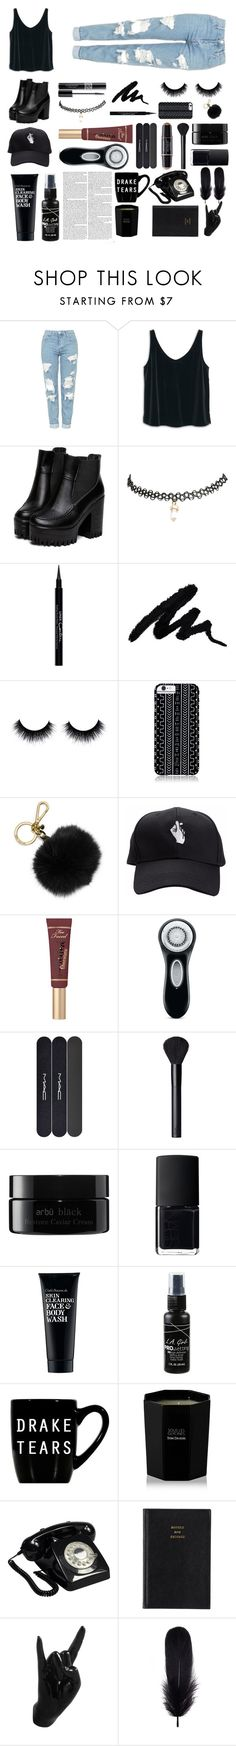 """""""HALEY"""" by x-nyaaa ❤ liked on Polyvore featuring Topshop, MANGO, Wet Seal, Givenchy, Christian Dior, Savannah Hayes, MICHAEL Michael Kors, Clarisonic, MAC Cosmetics and NARS Cosmetics"""